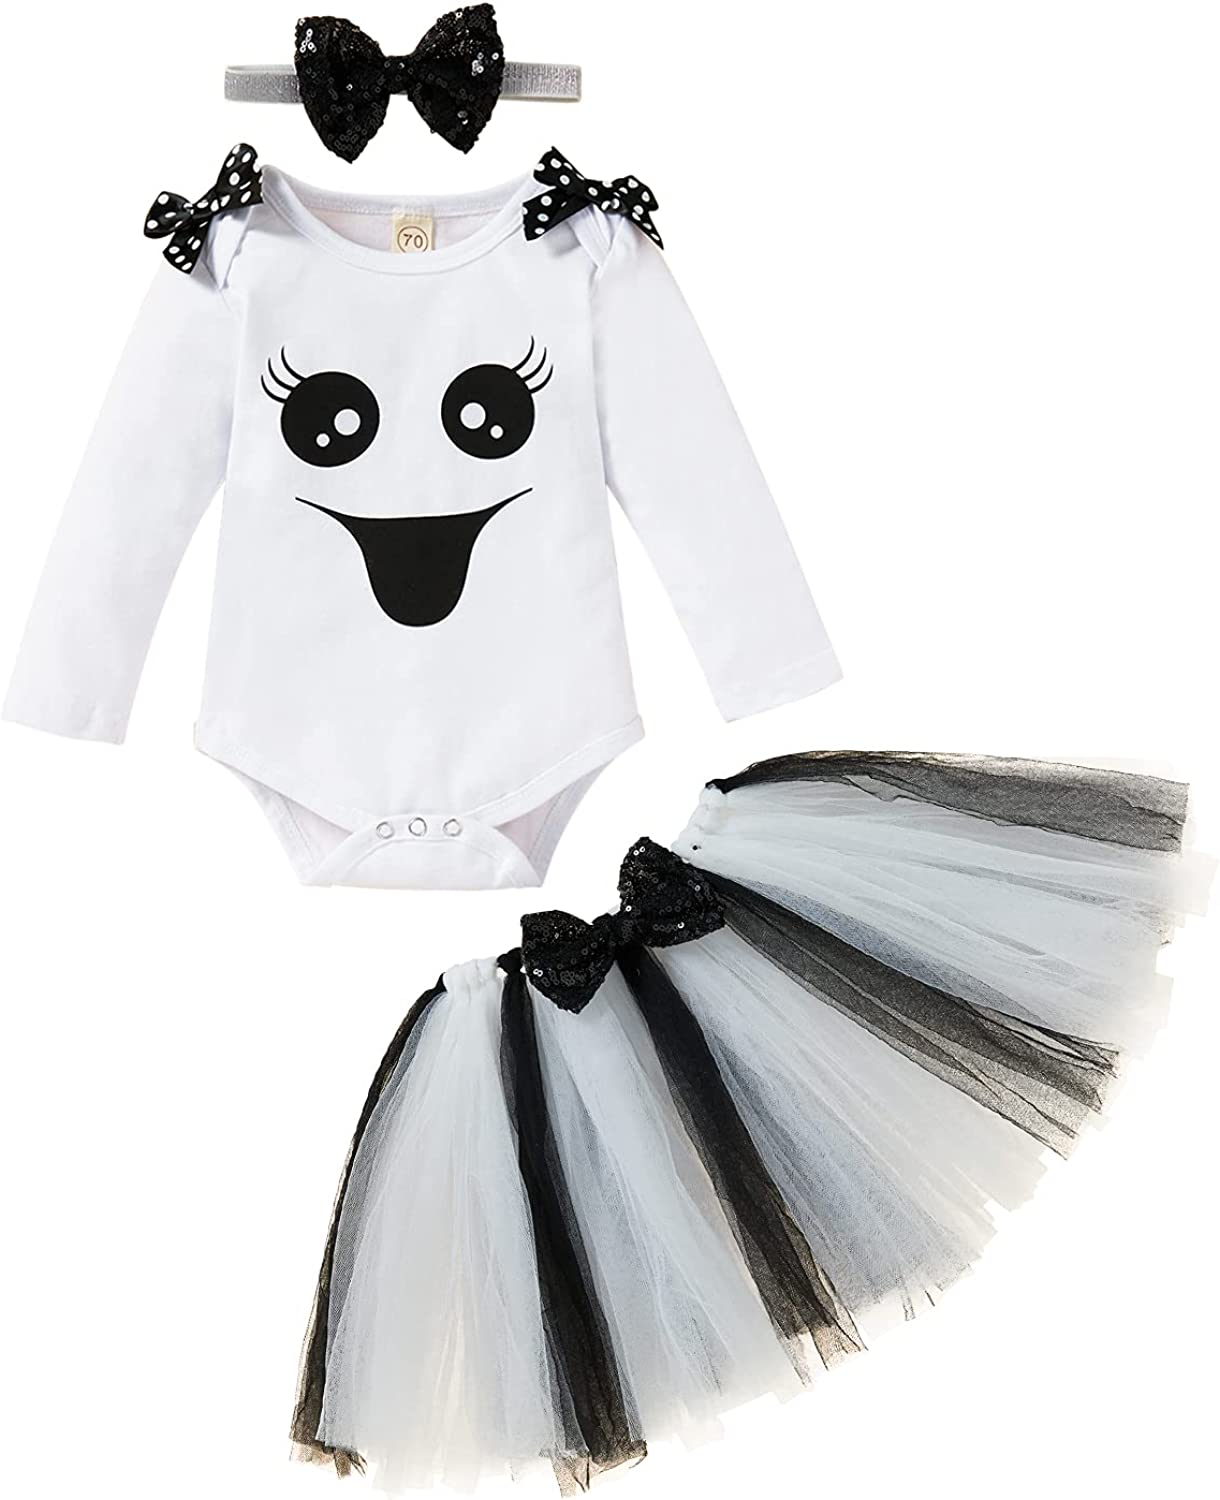 Baby Girls Halloween Skirts Set Long Sleeve Ghost Face Romper+Tutu Dress+Headband Outfits Clothes